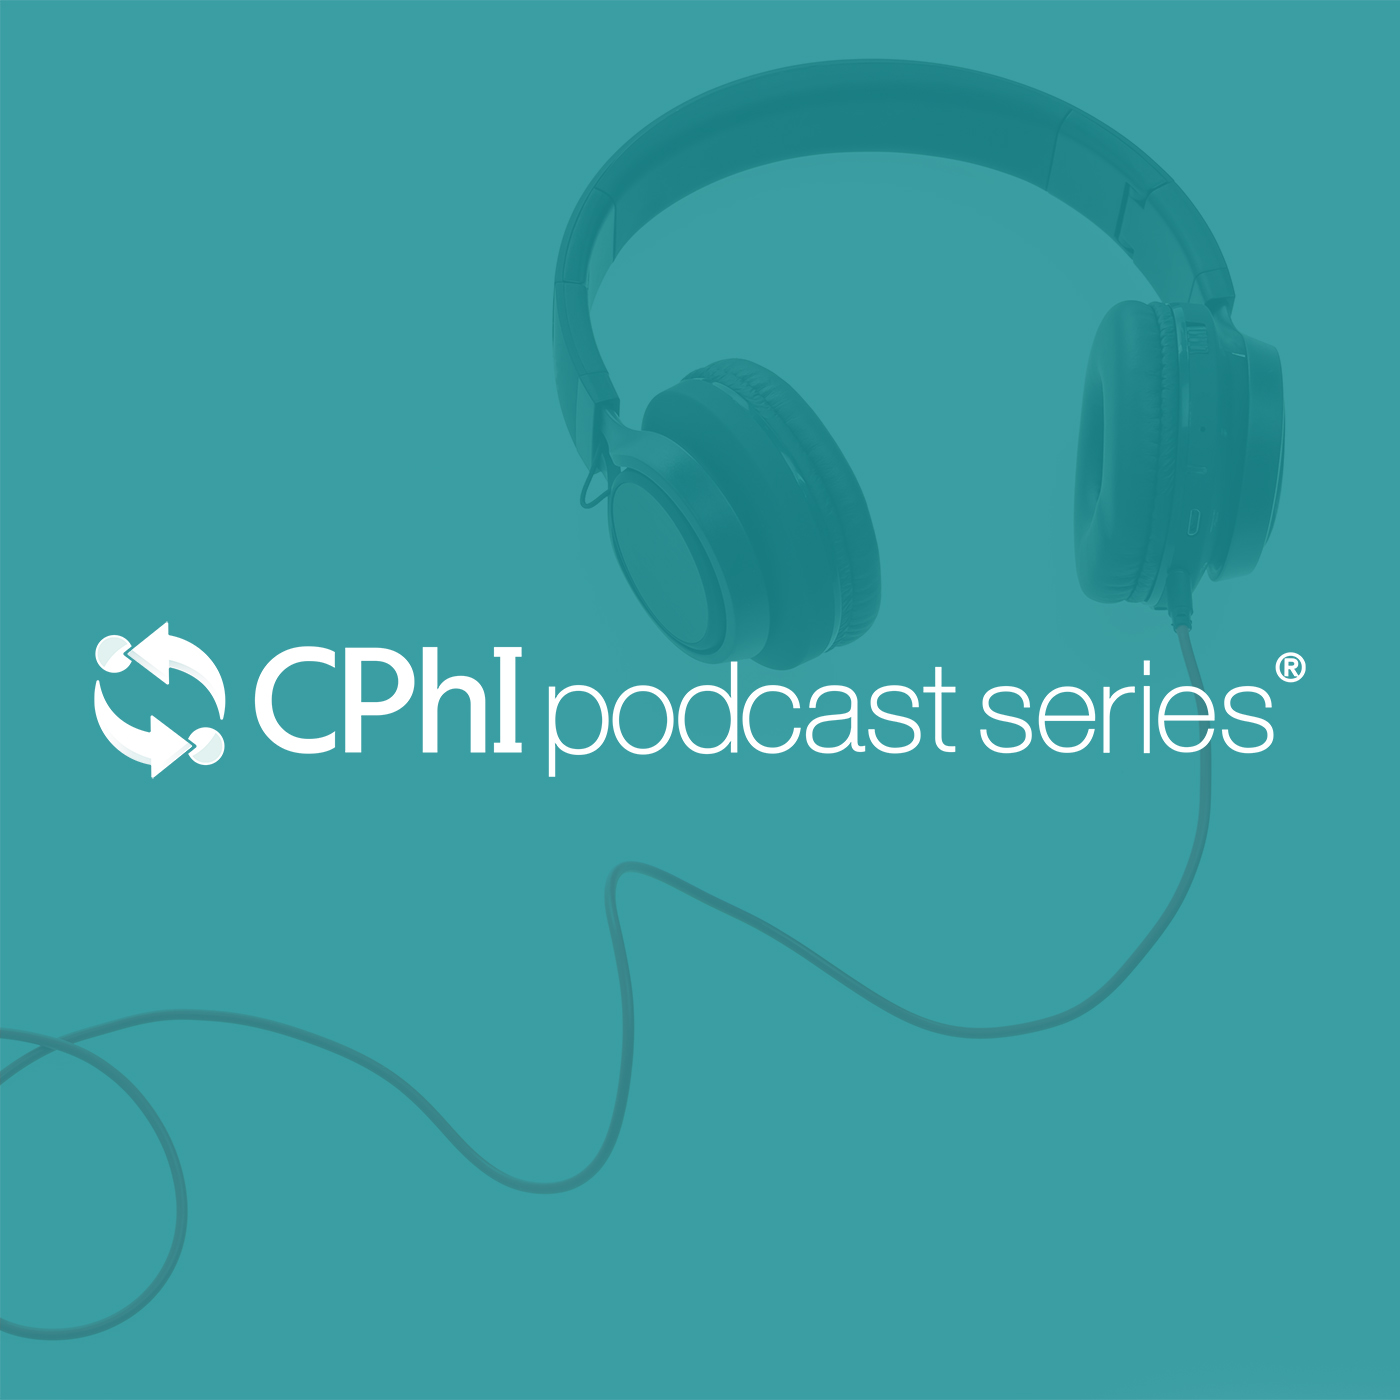 Artwork for podcast CPhI Podcast Series